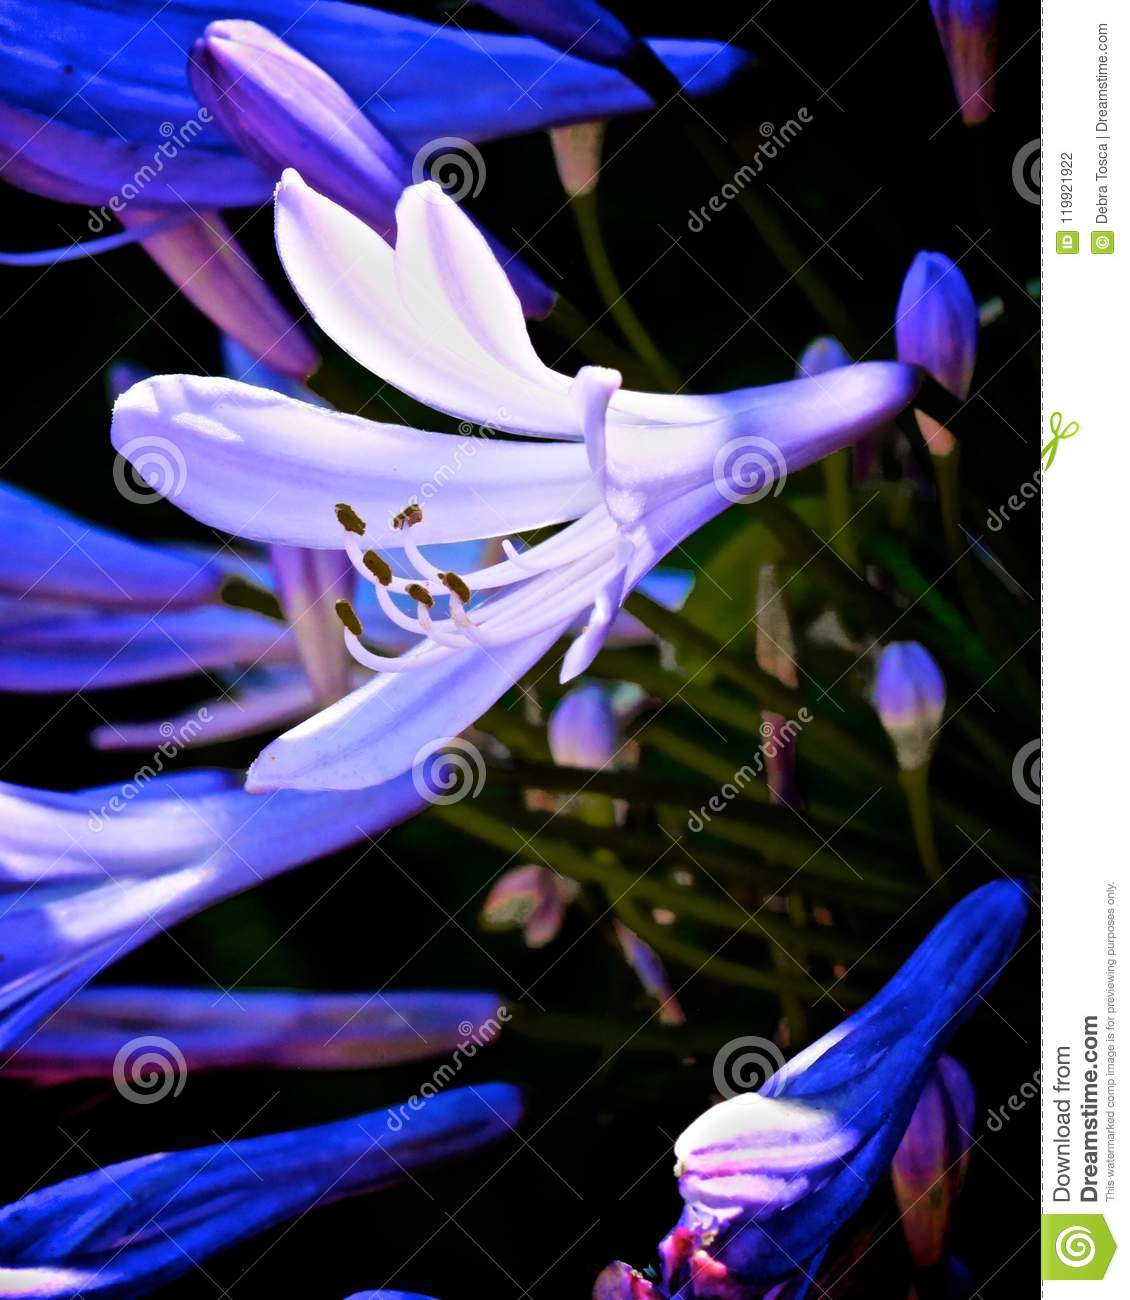 Agapanthus African Blue Lily Flower Stock Photo Image Of Blue